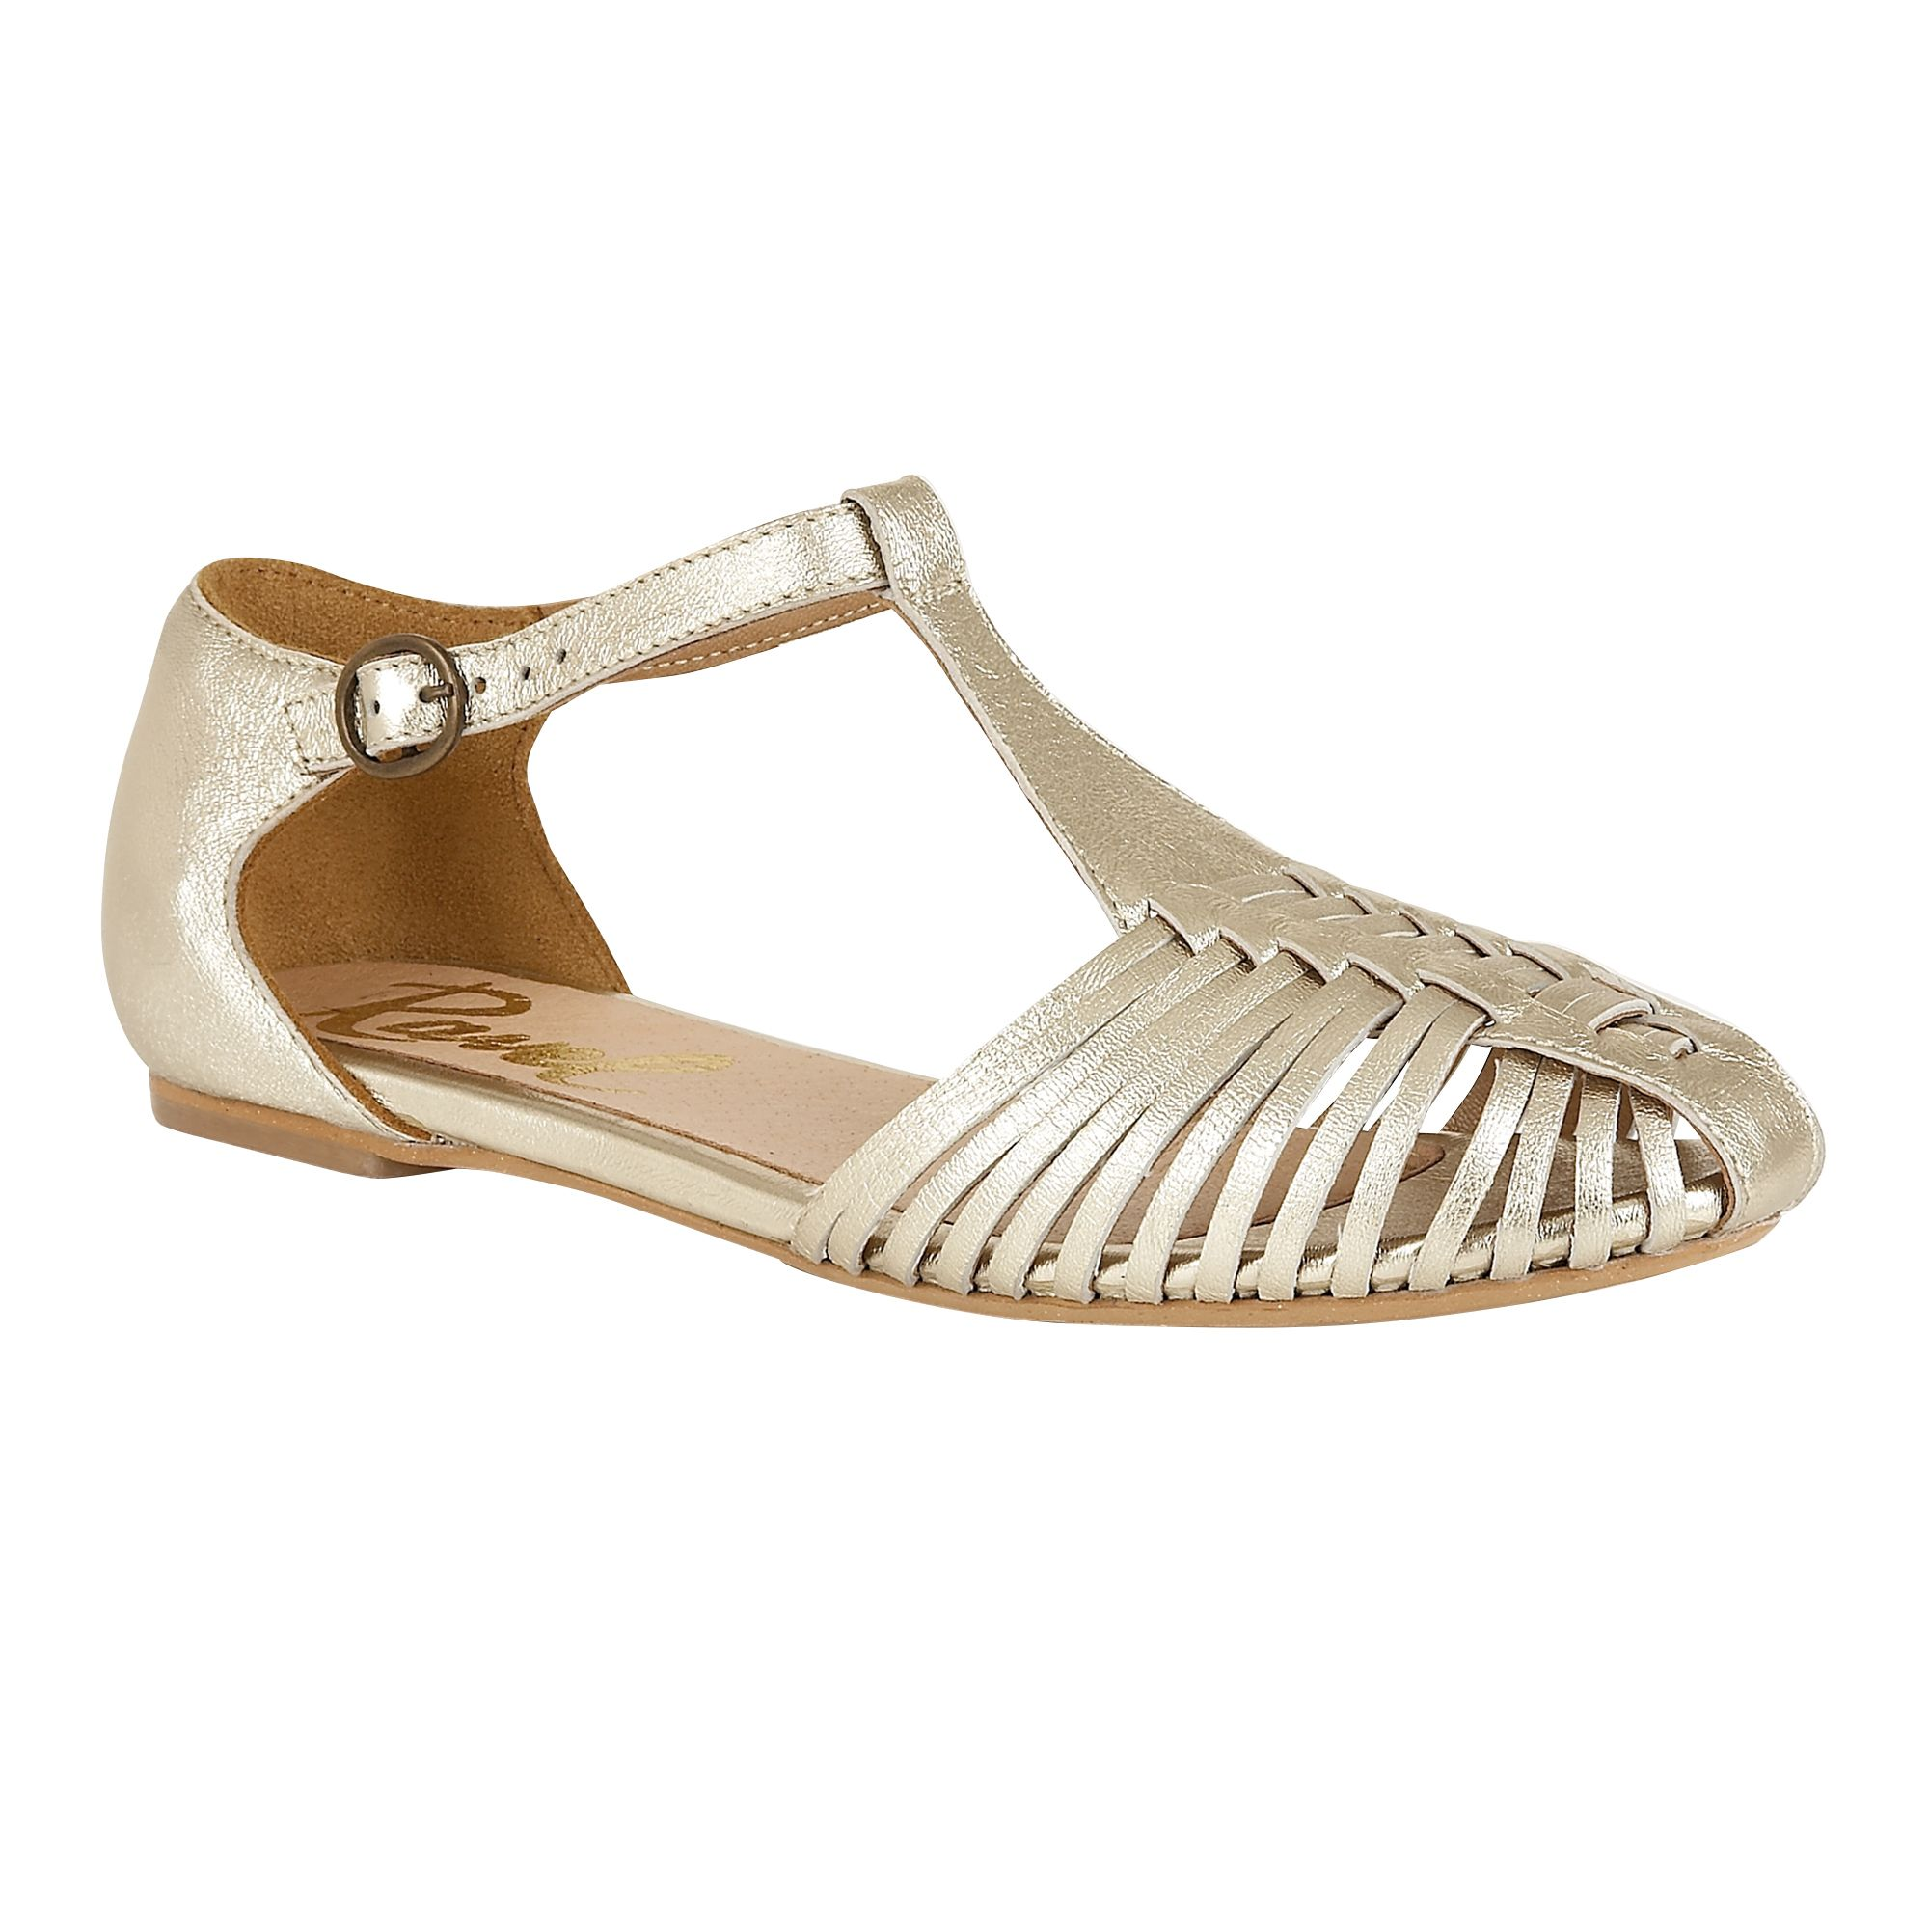 Ladies Soft Leather T Bar Shoes Flat With Velcro Fastening